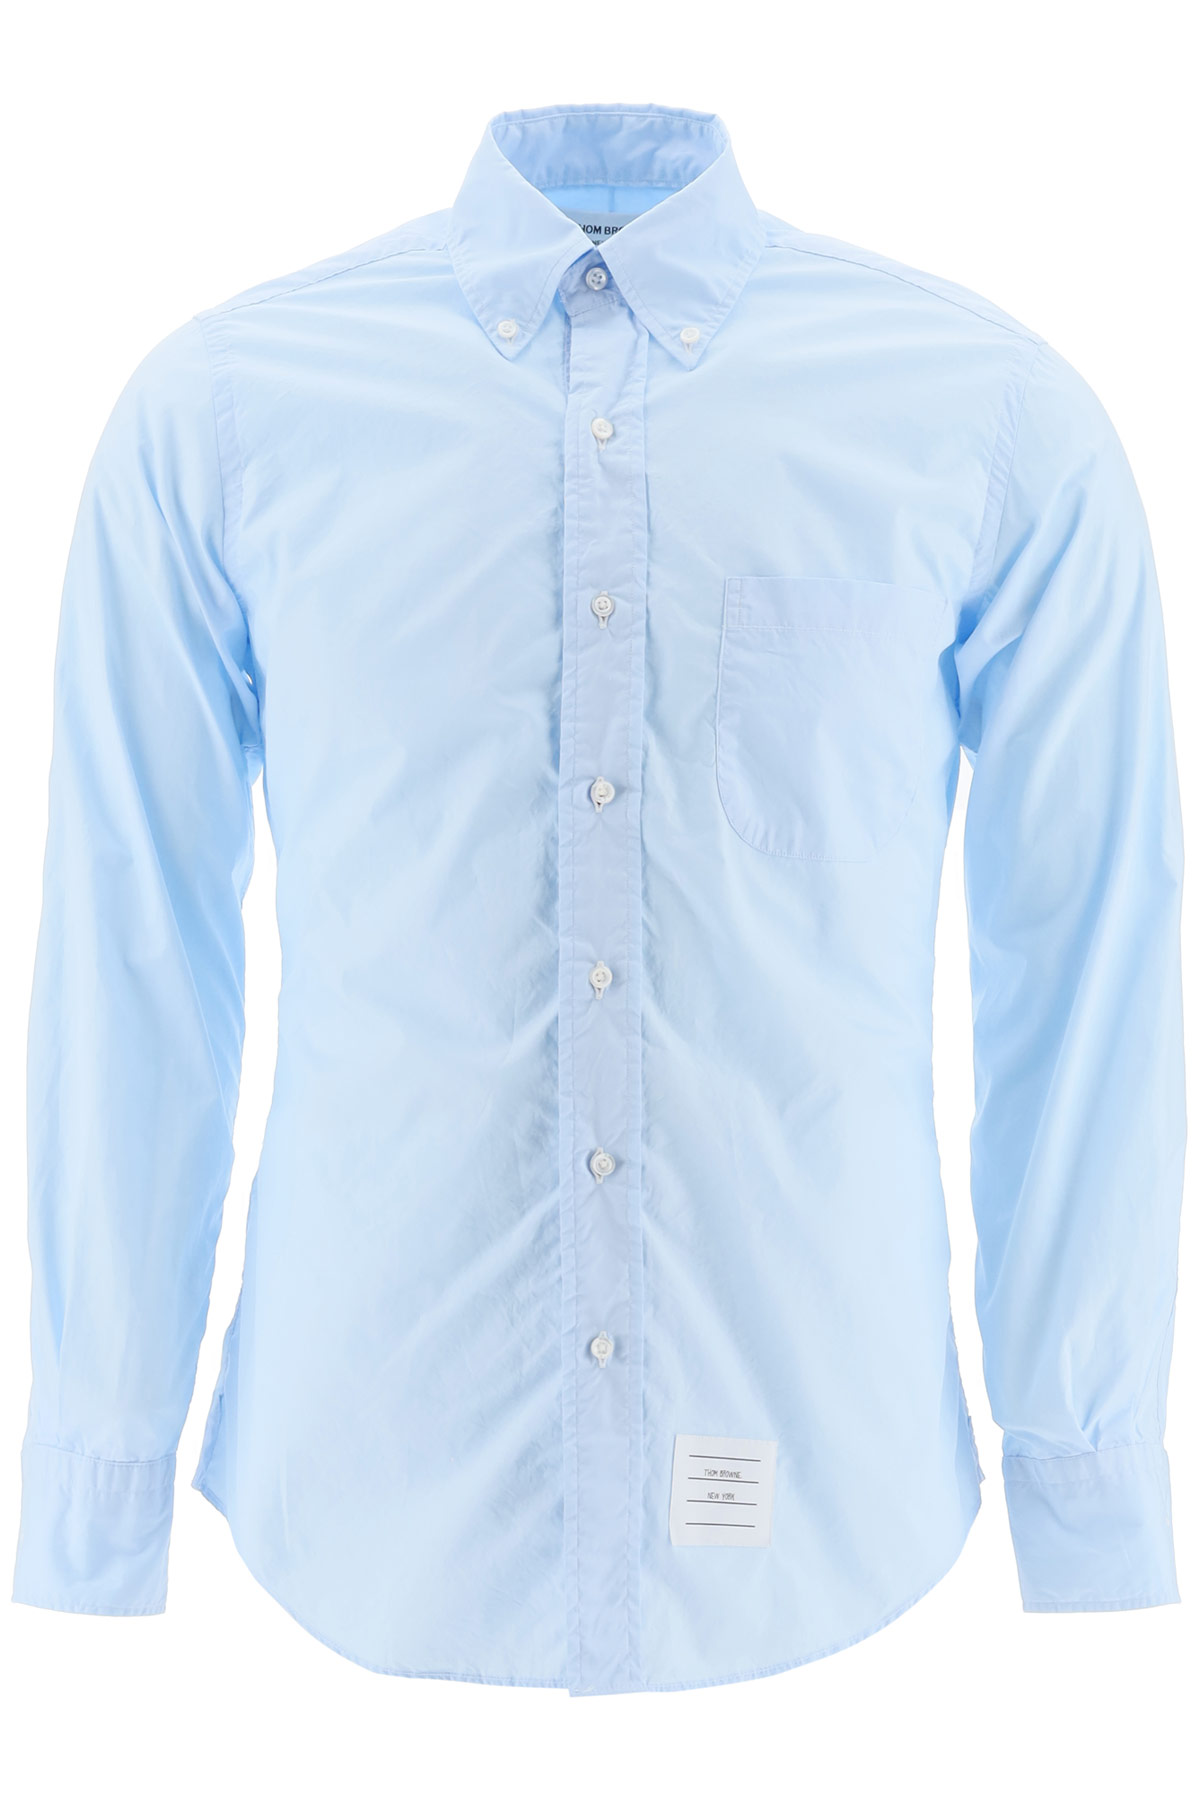 THOM BROWNE SHIRT WITH TRICOLOR BAND 0 Light blue Cotton